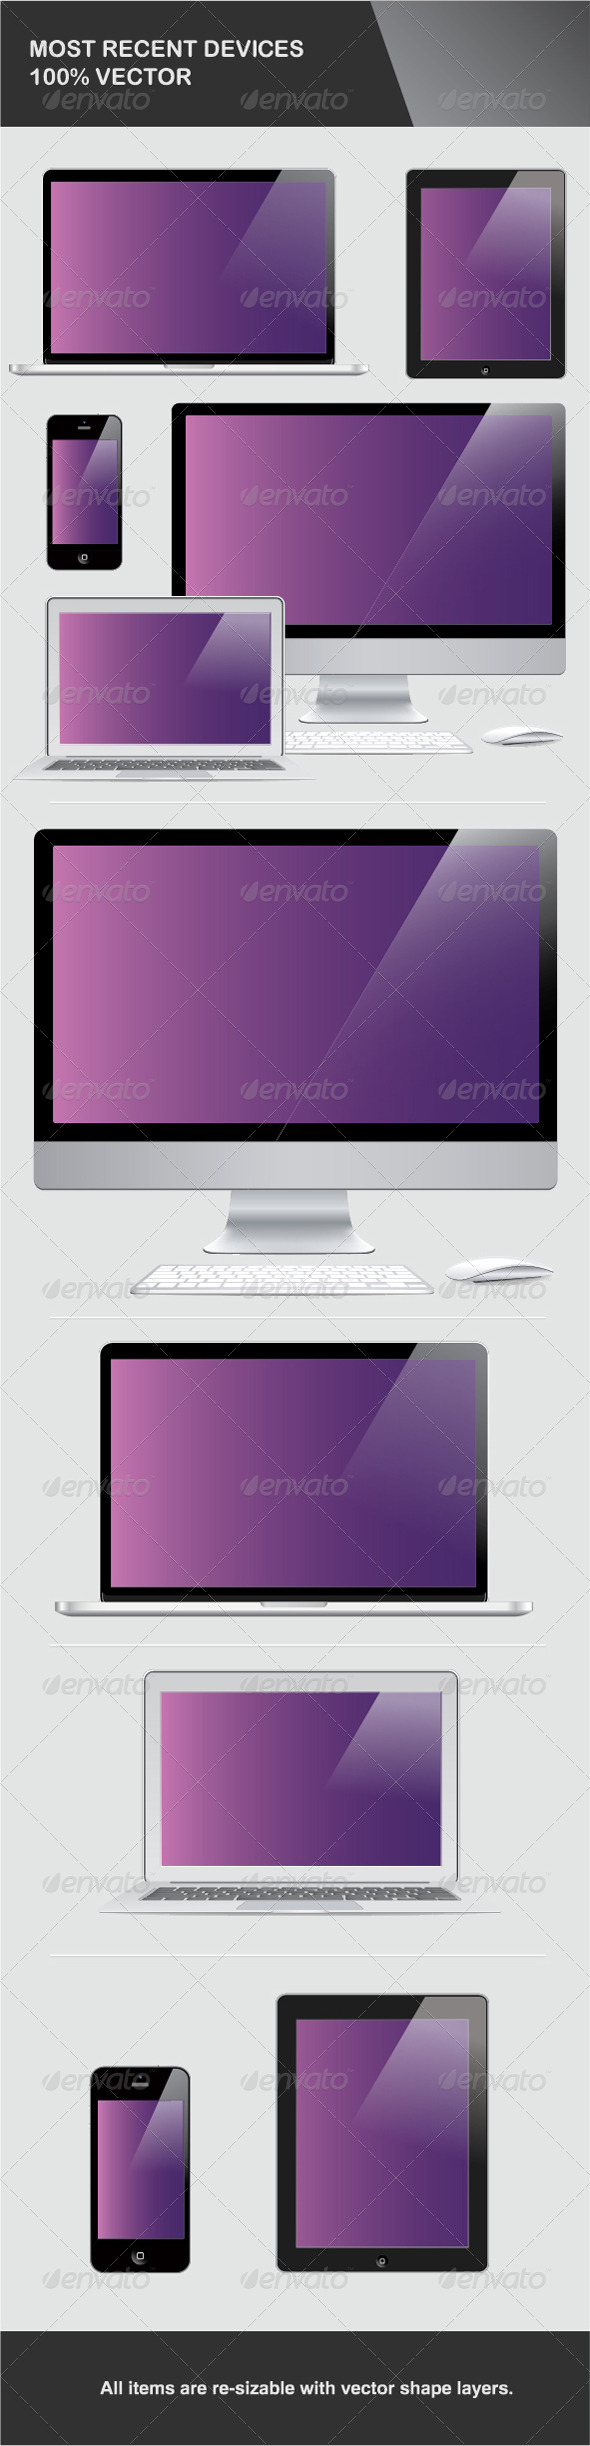 GraphicRiver Most Recent Devices in Vector 4771585